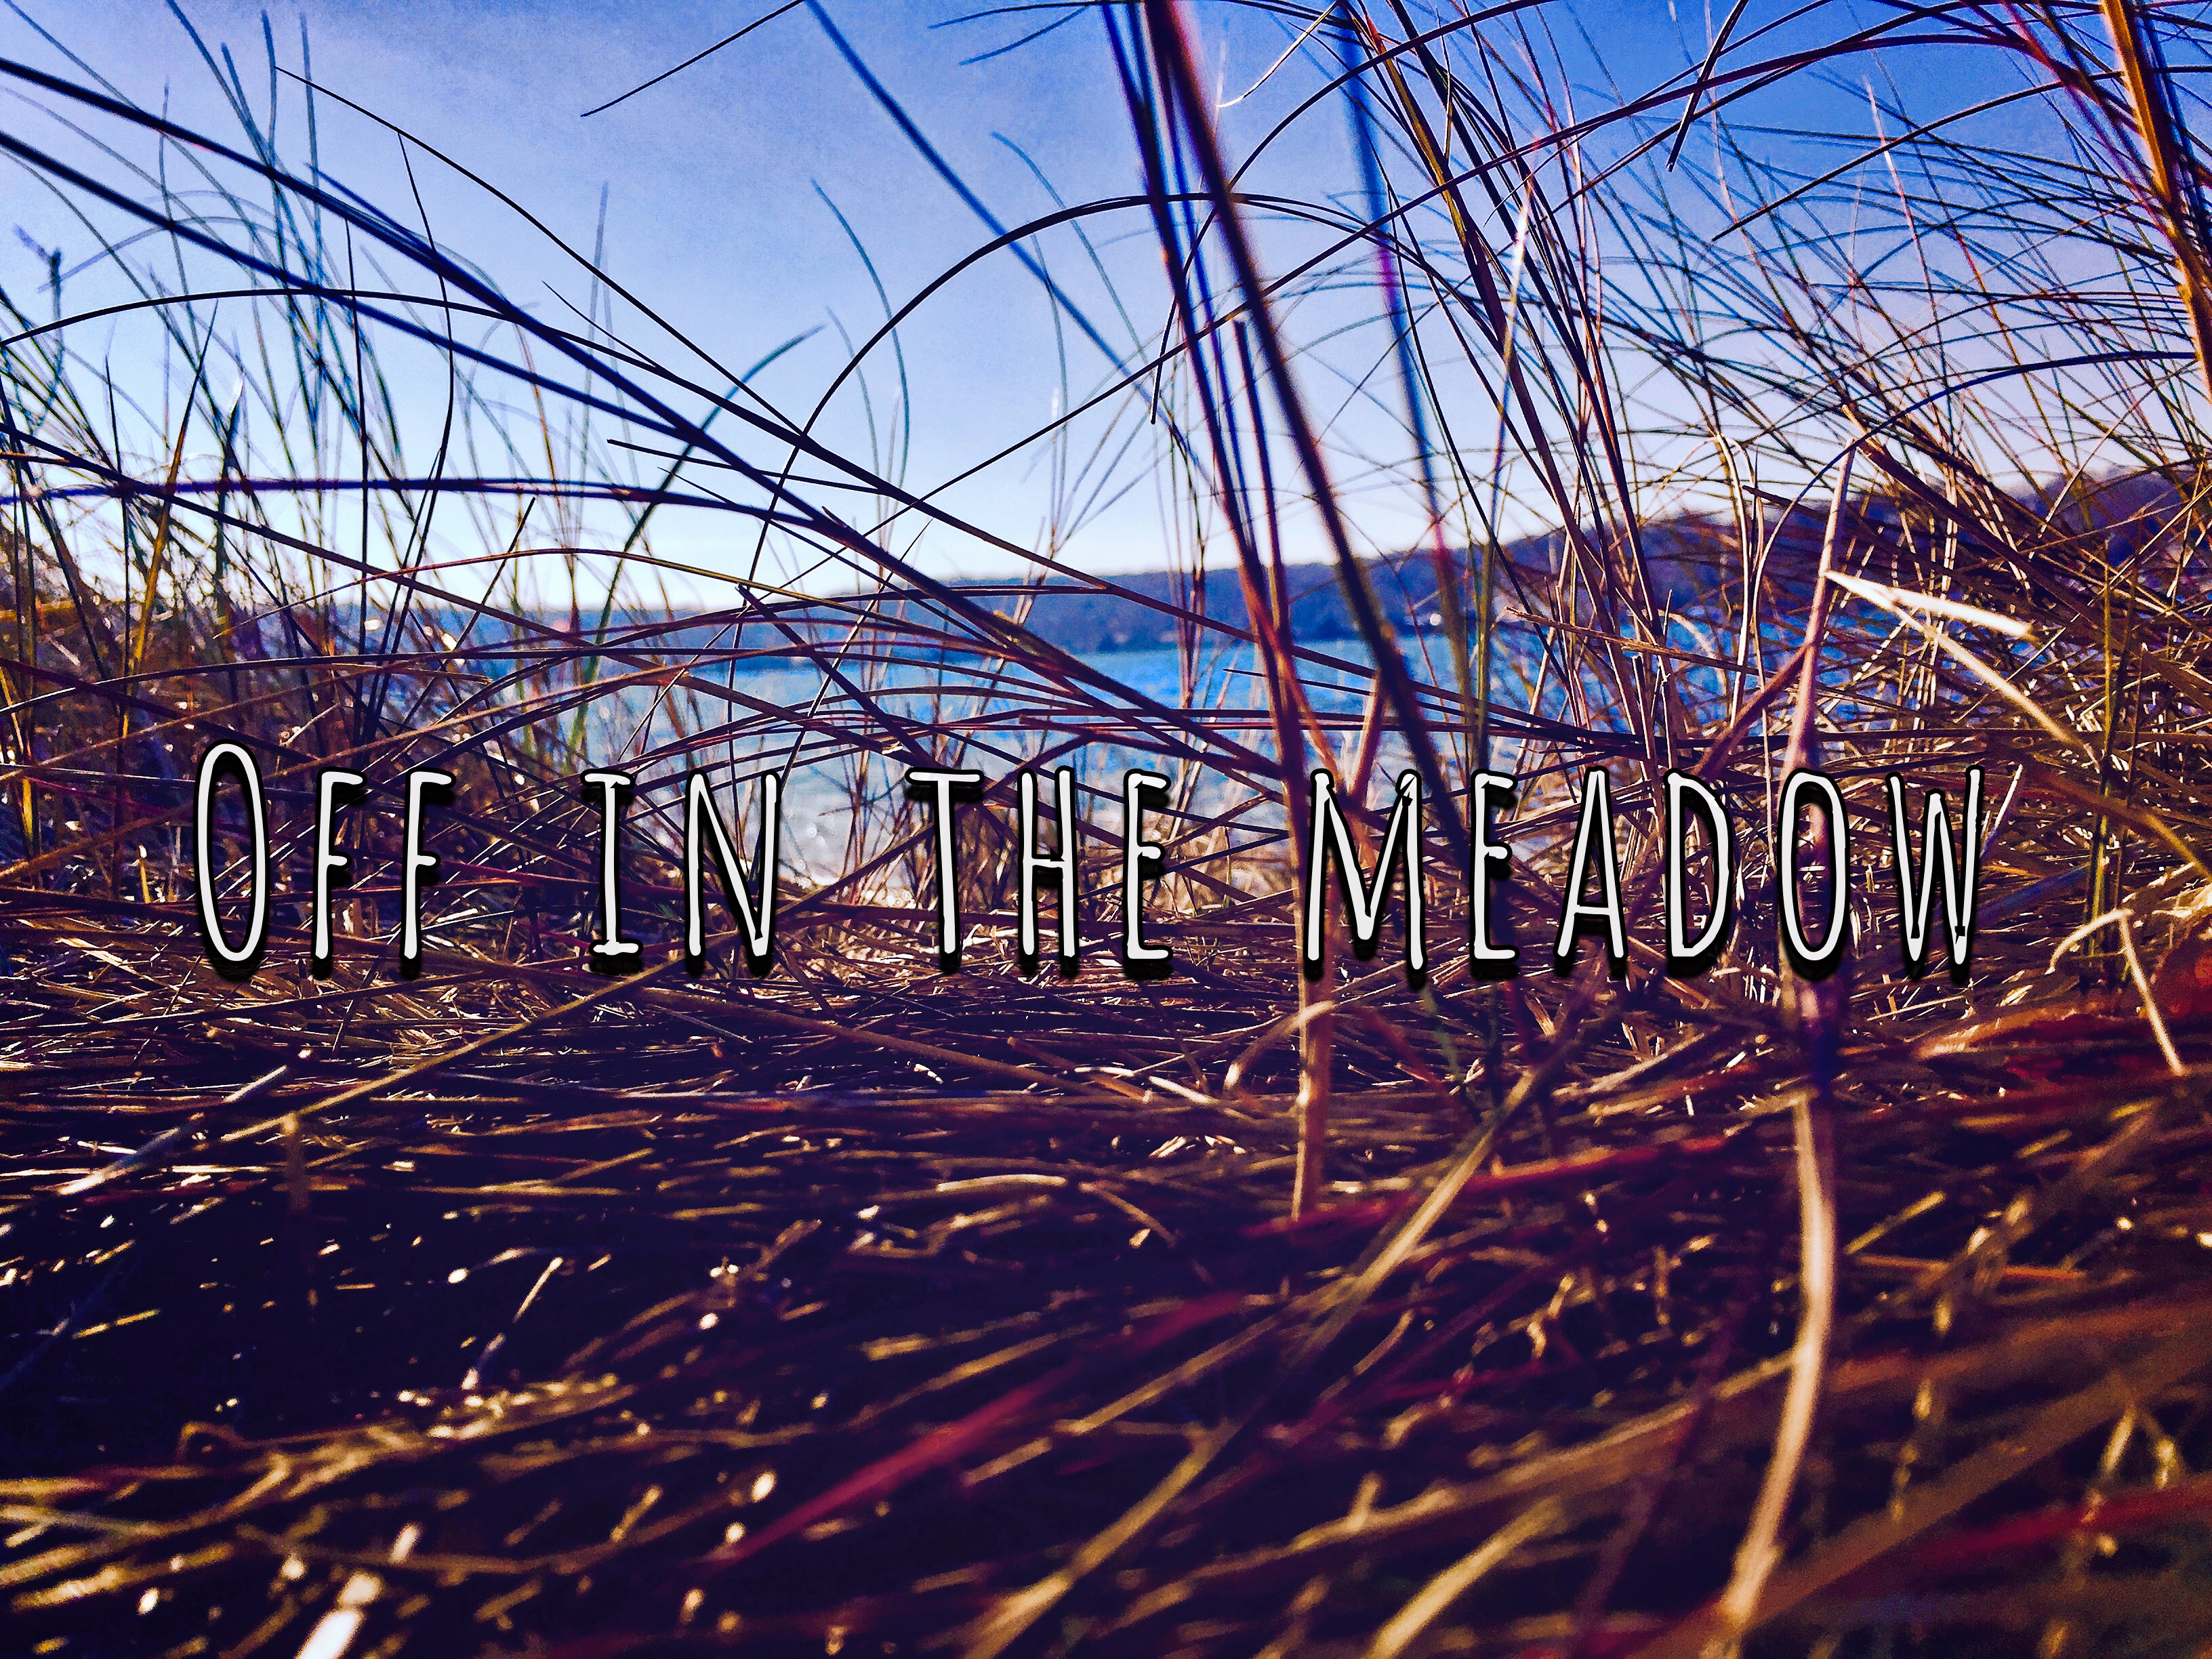 Poem: Off in the Meadow